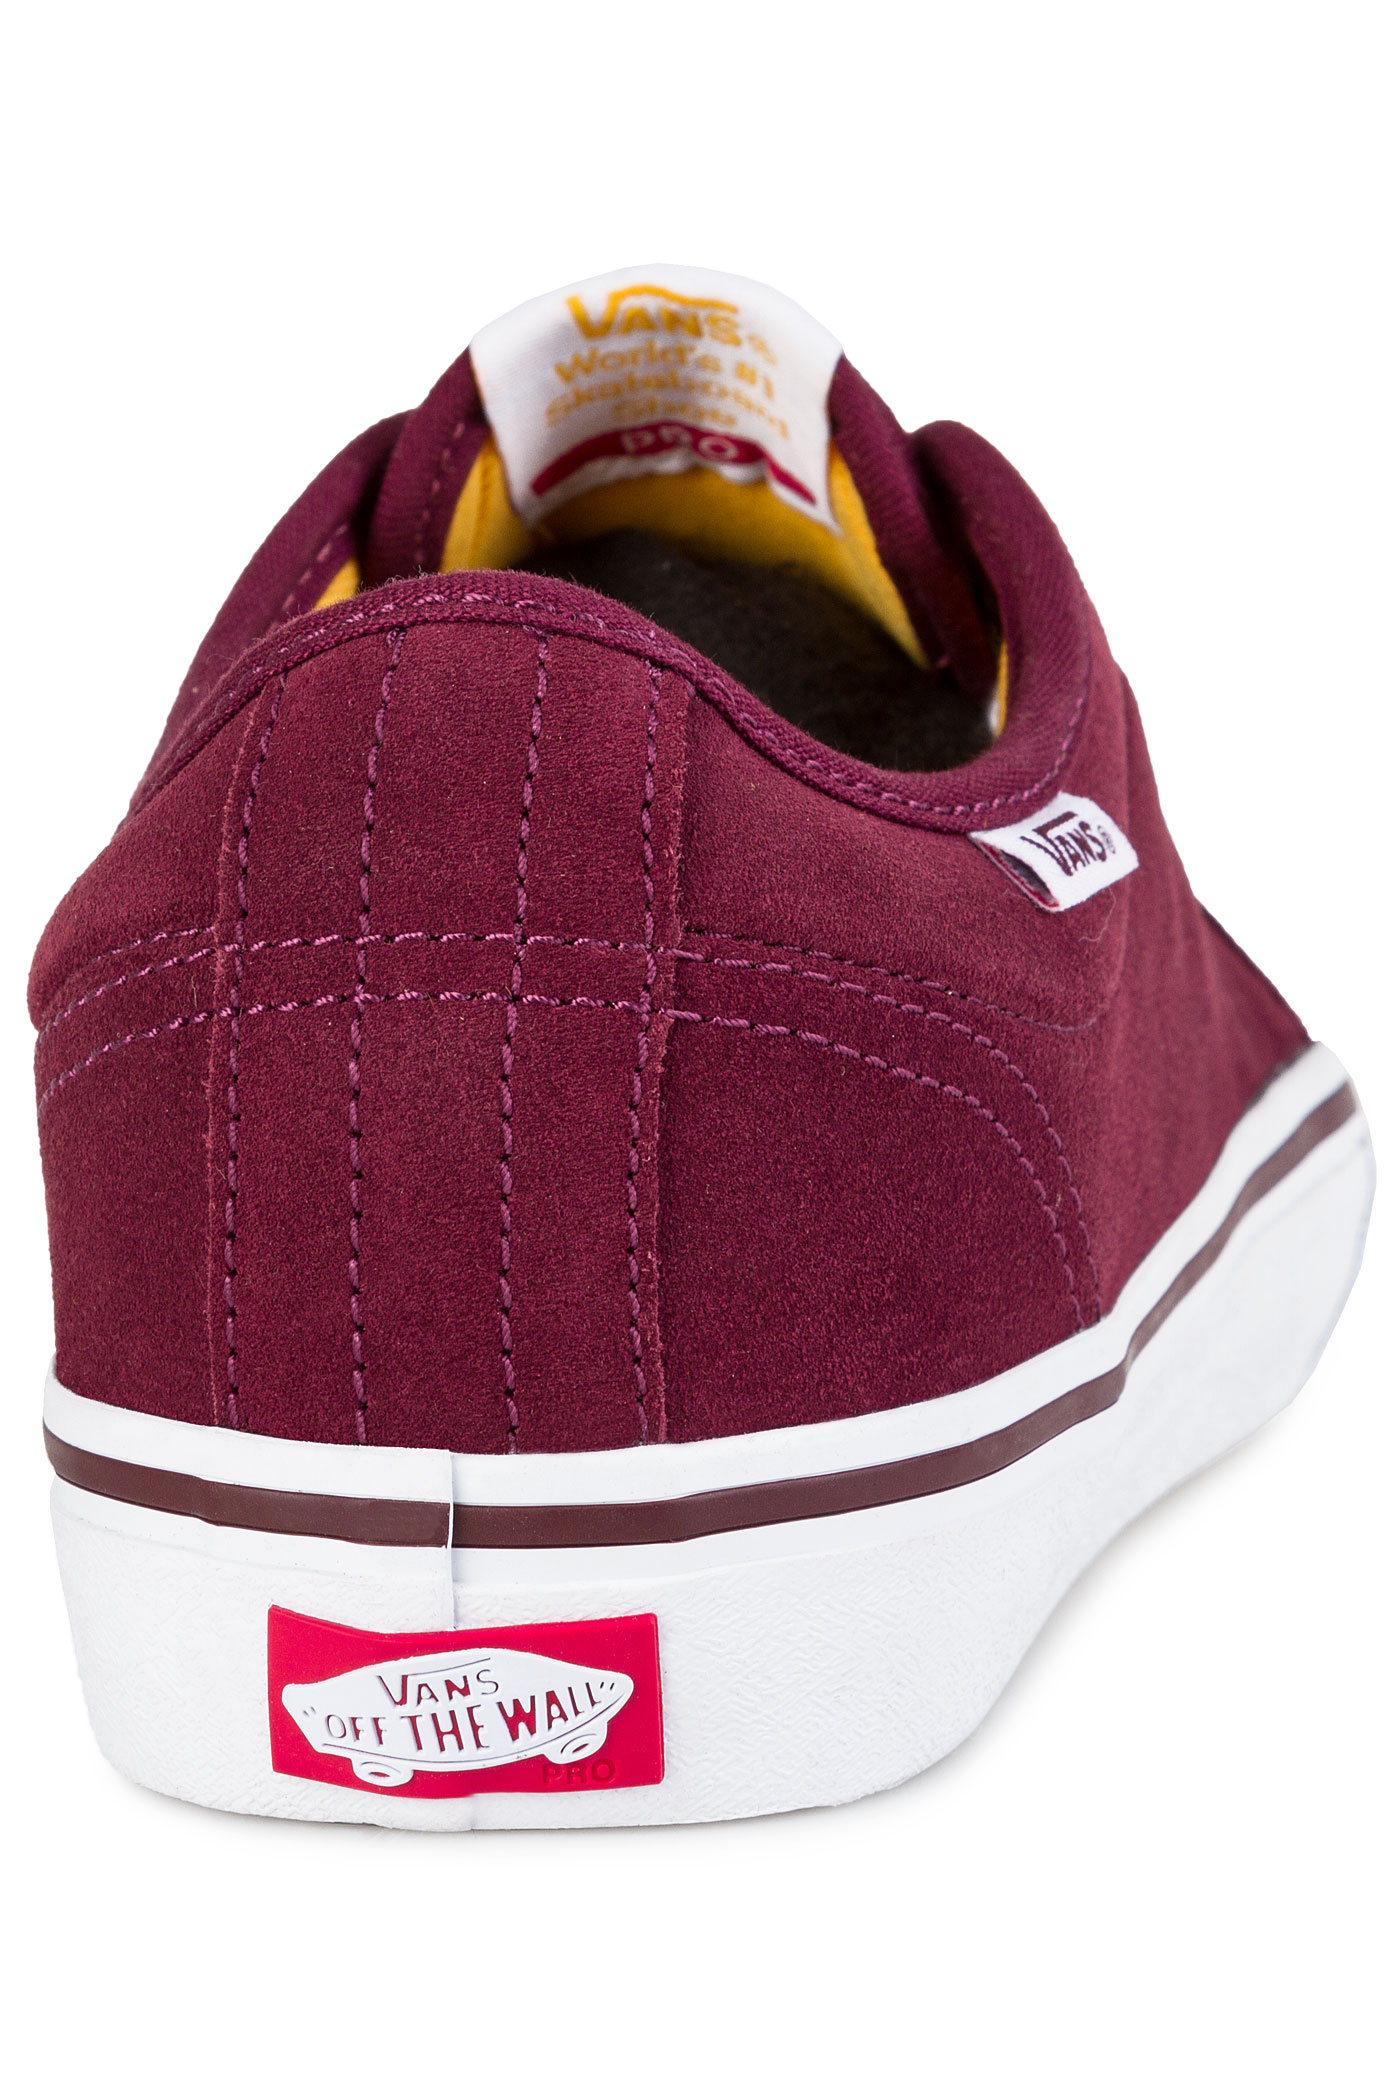 Vans Chukka Low Pro Shoes Port White